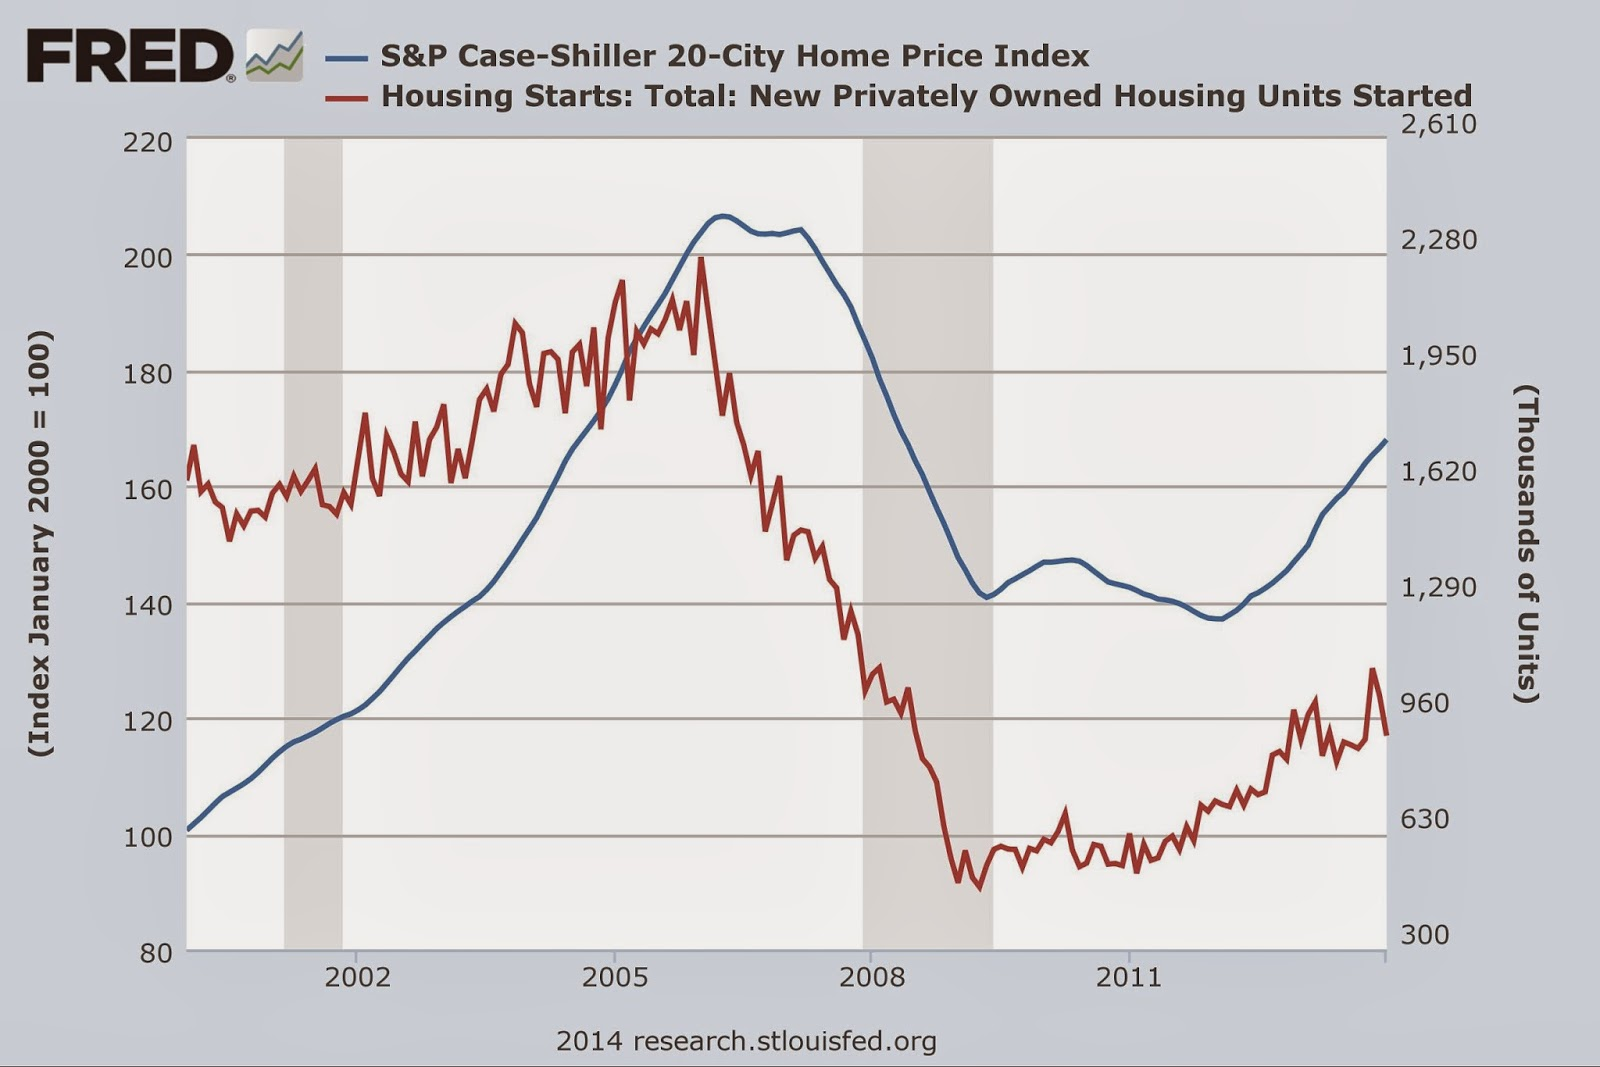 Chart of S&P Case-Shiller 20-City Home Price Index and Housing Starts: Total: New Privately Owned Housing Units Started from 2000 through Lesser Depression / Great Recession